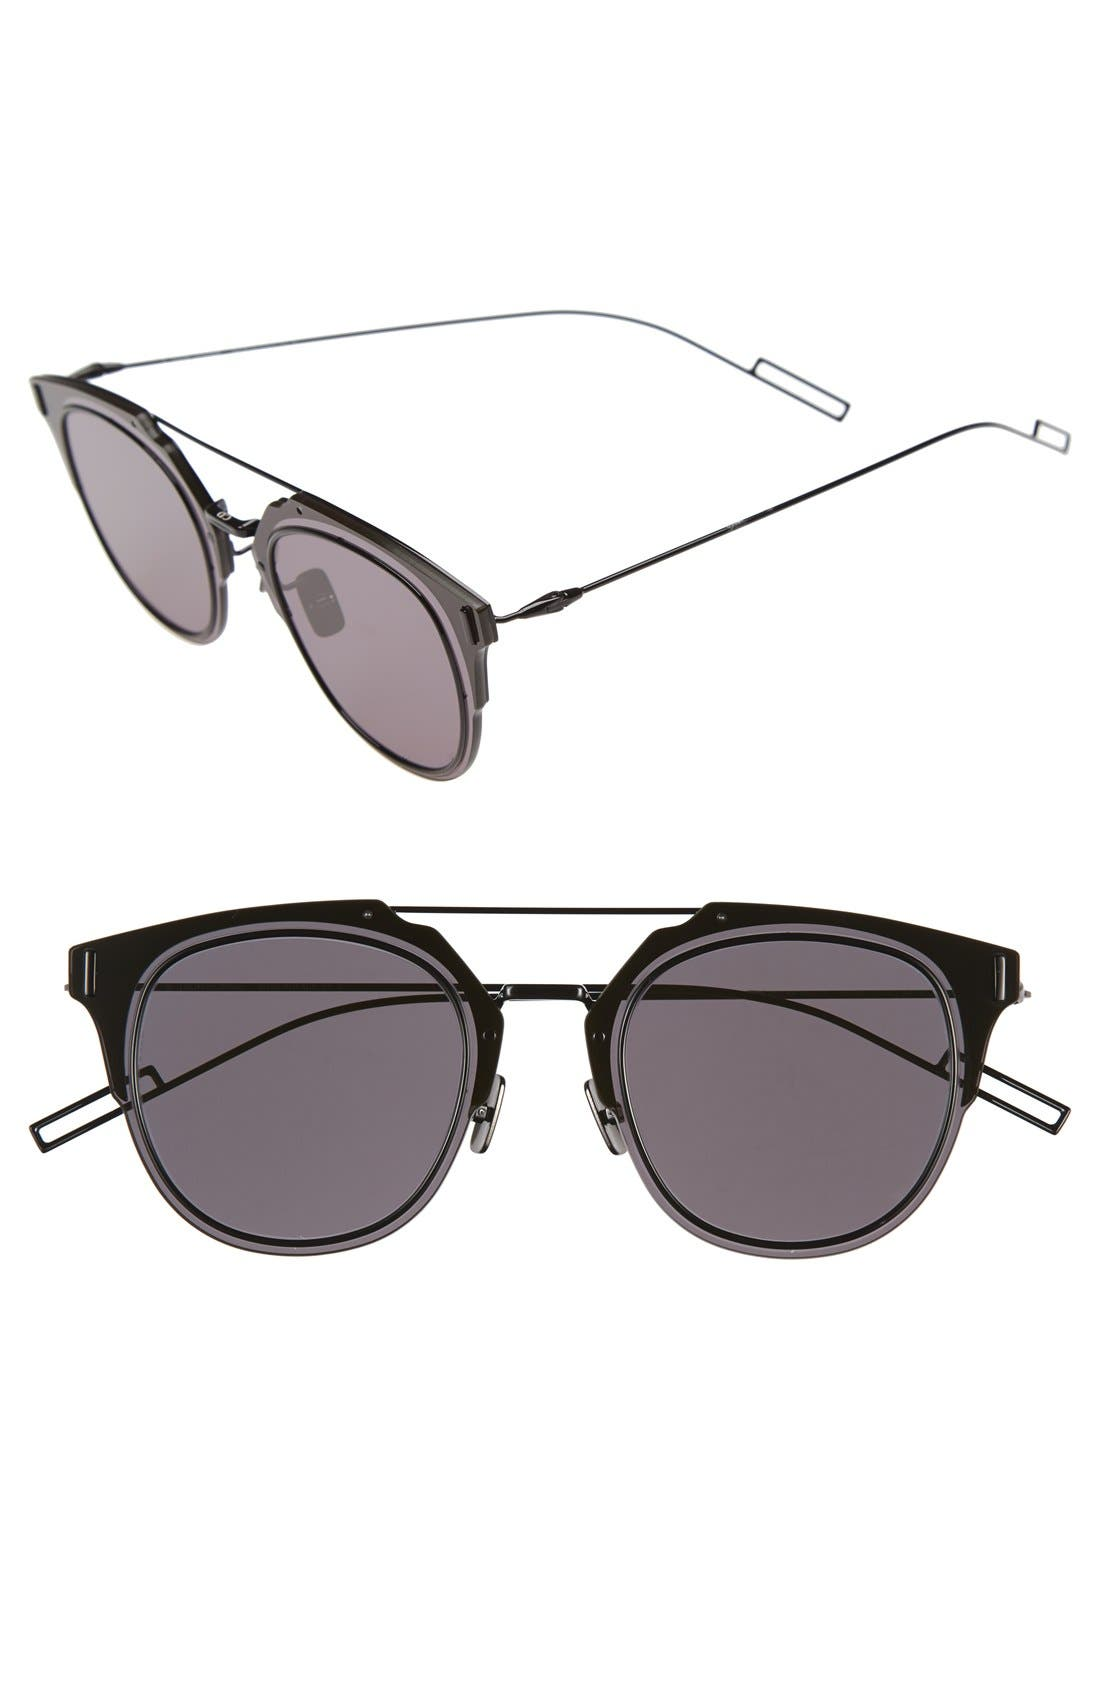 DIOR HOMME 'Composit 1.0S' 62mm Metal Shield Sunglasses